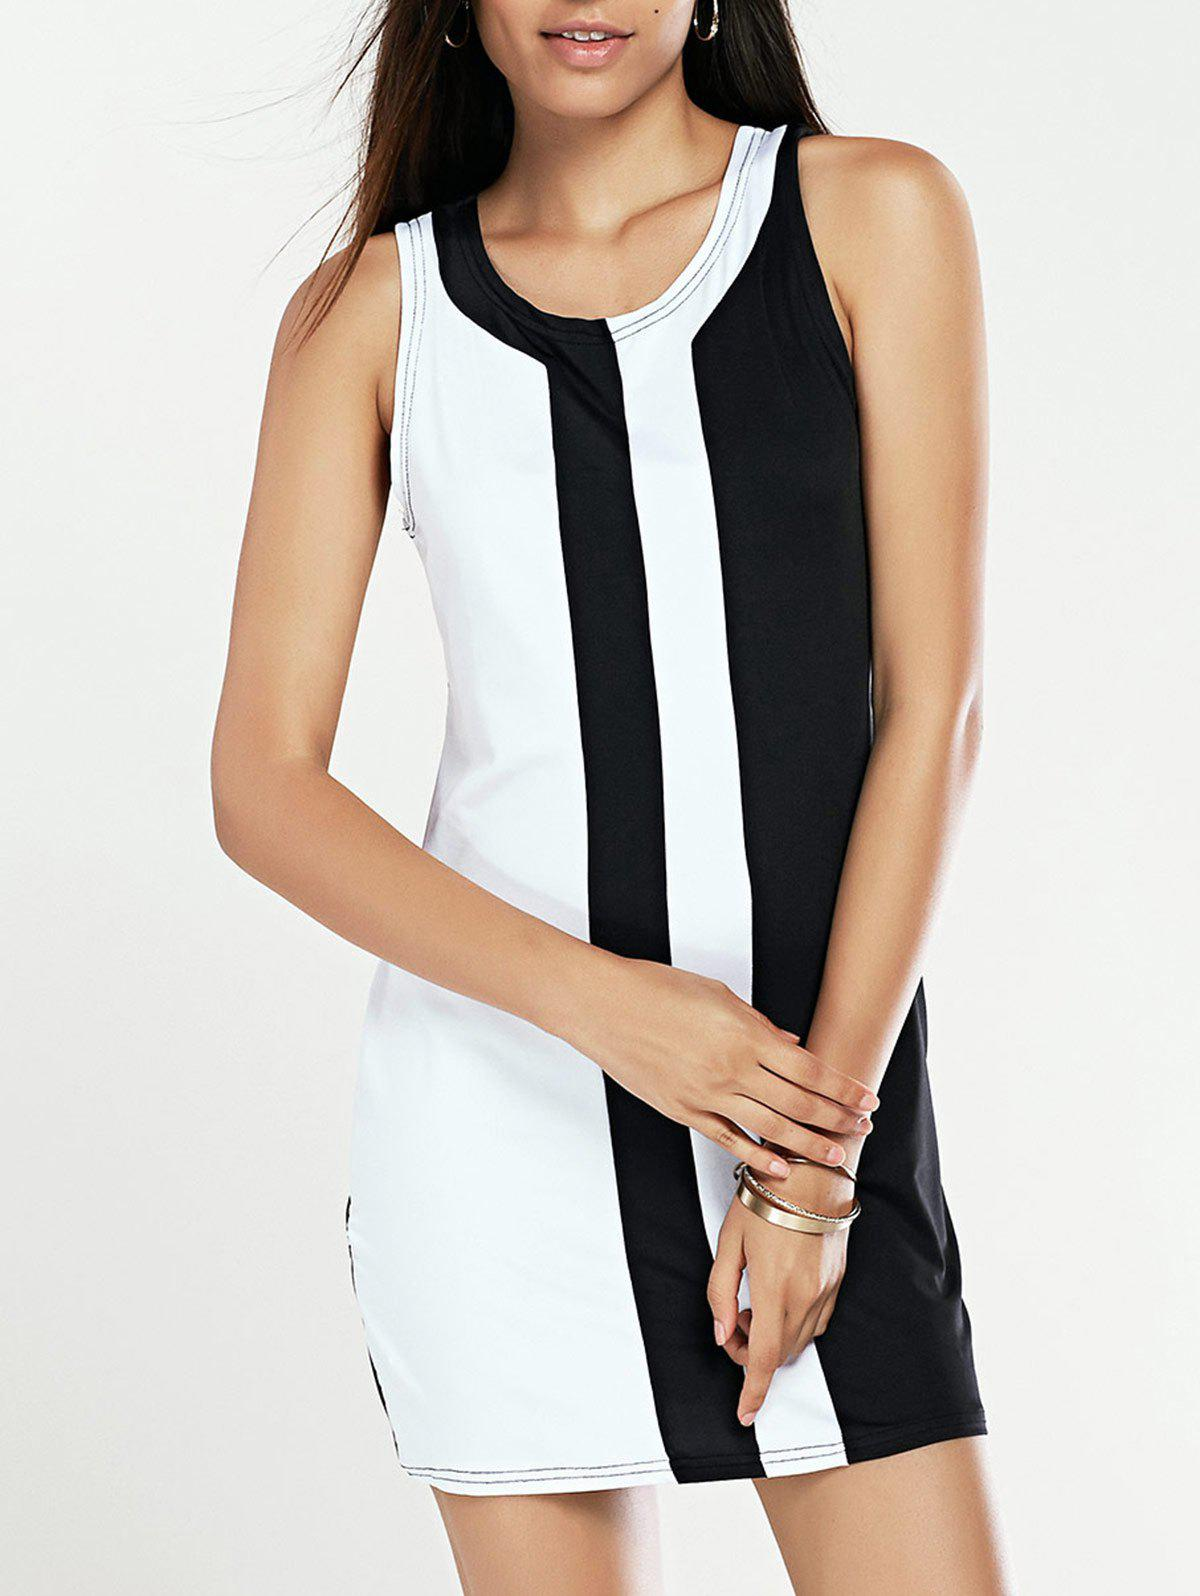 Slimming Black and White Spliced Dress For Women - WHITE/BLACK M